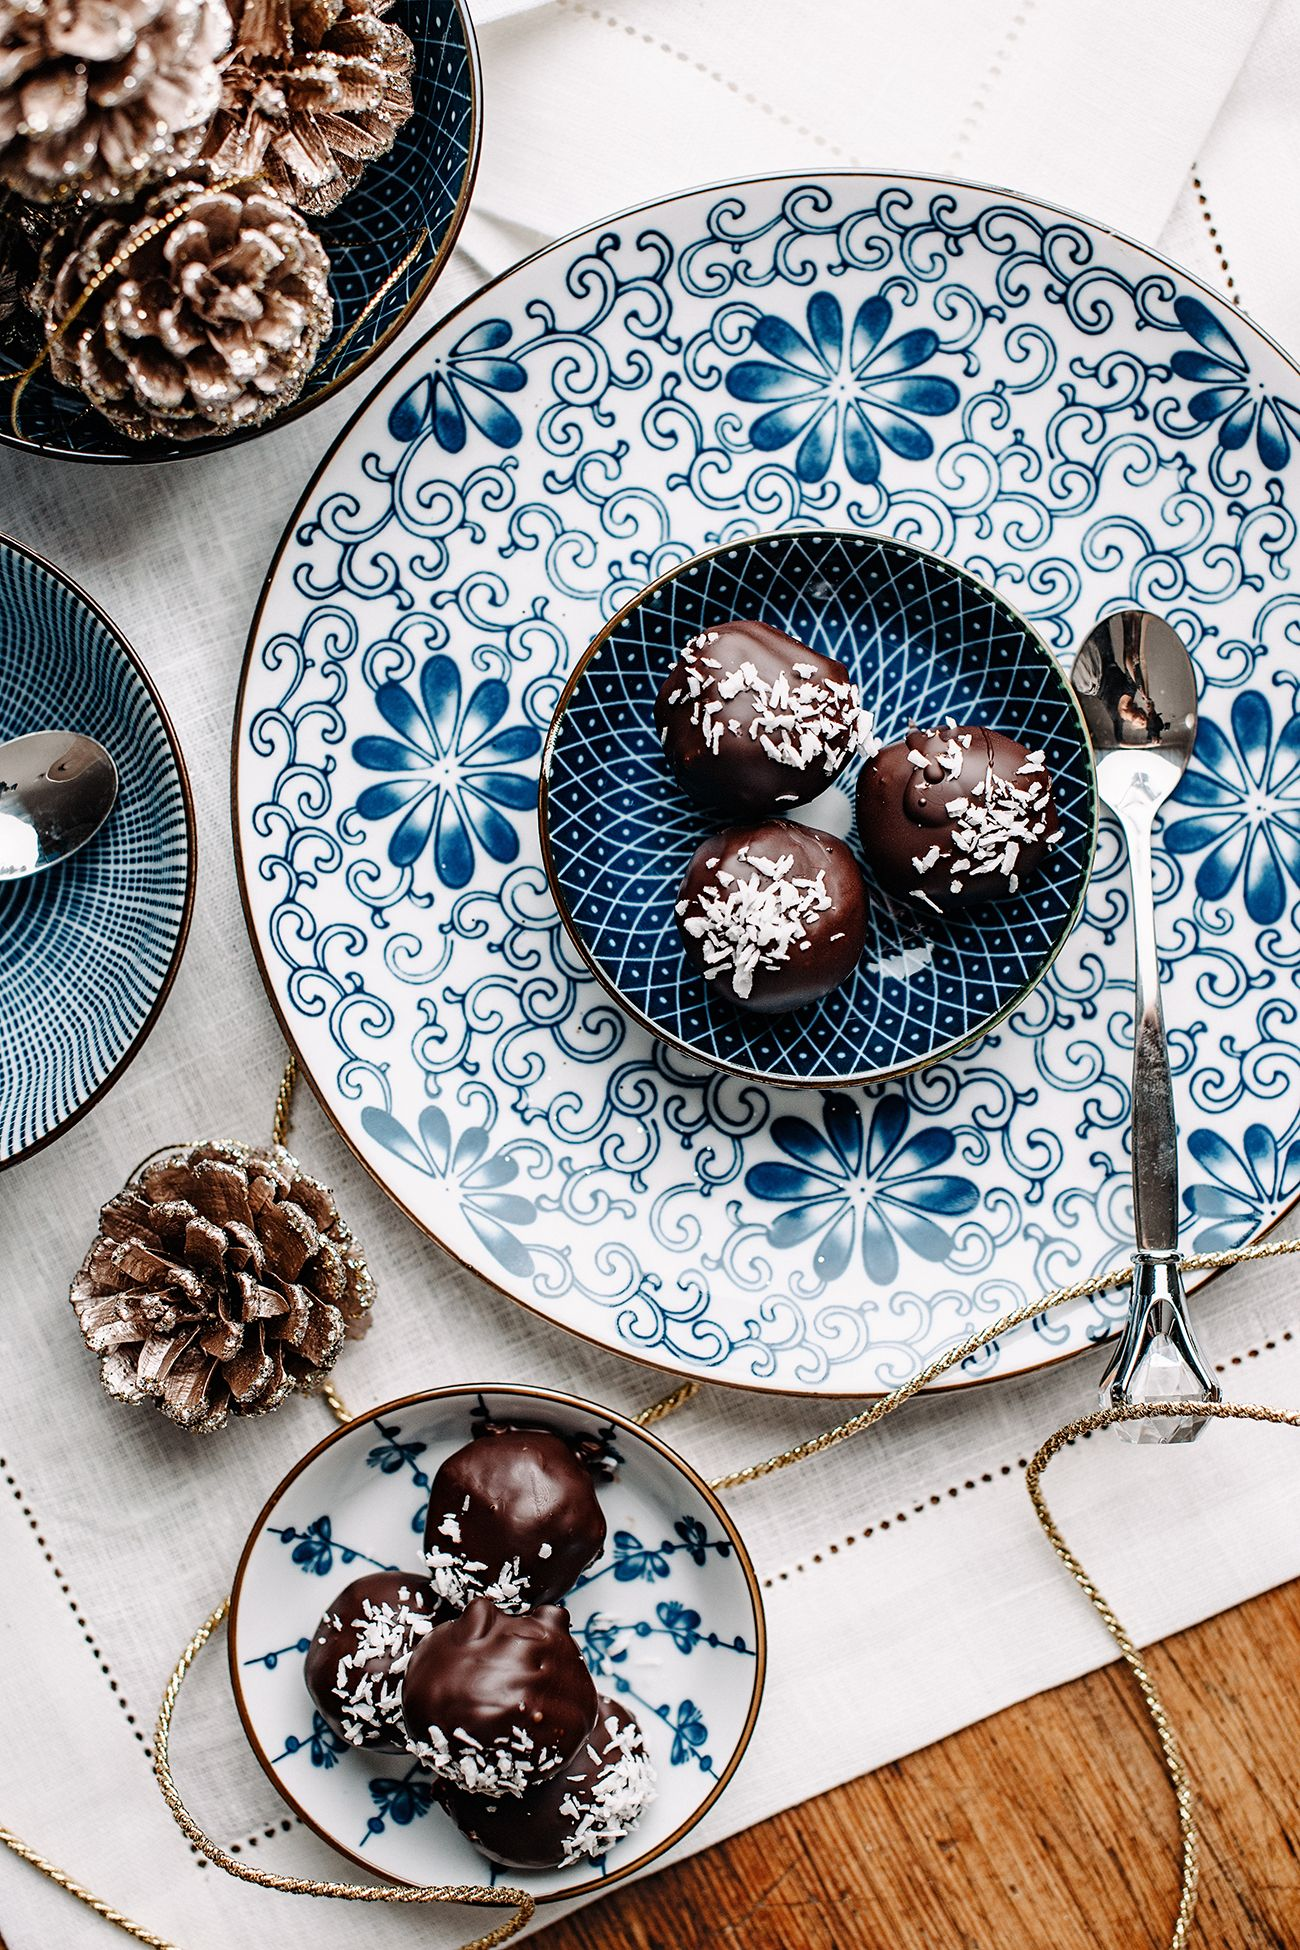 Homemade chocolate candy overhead table top